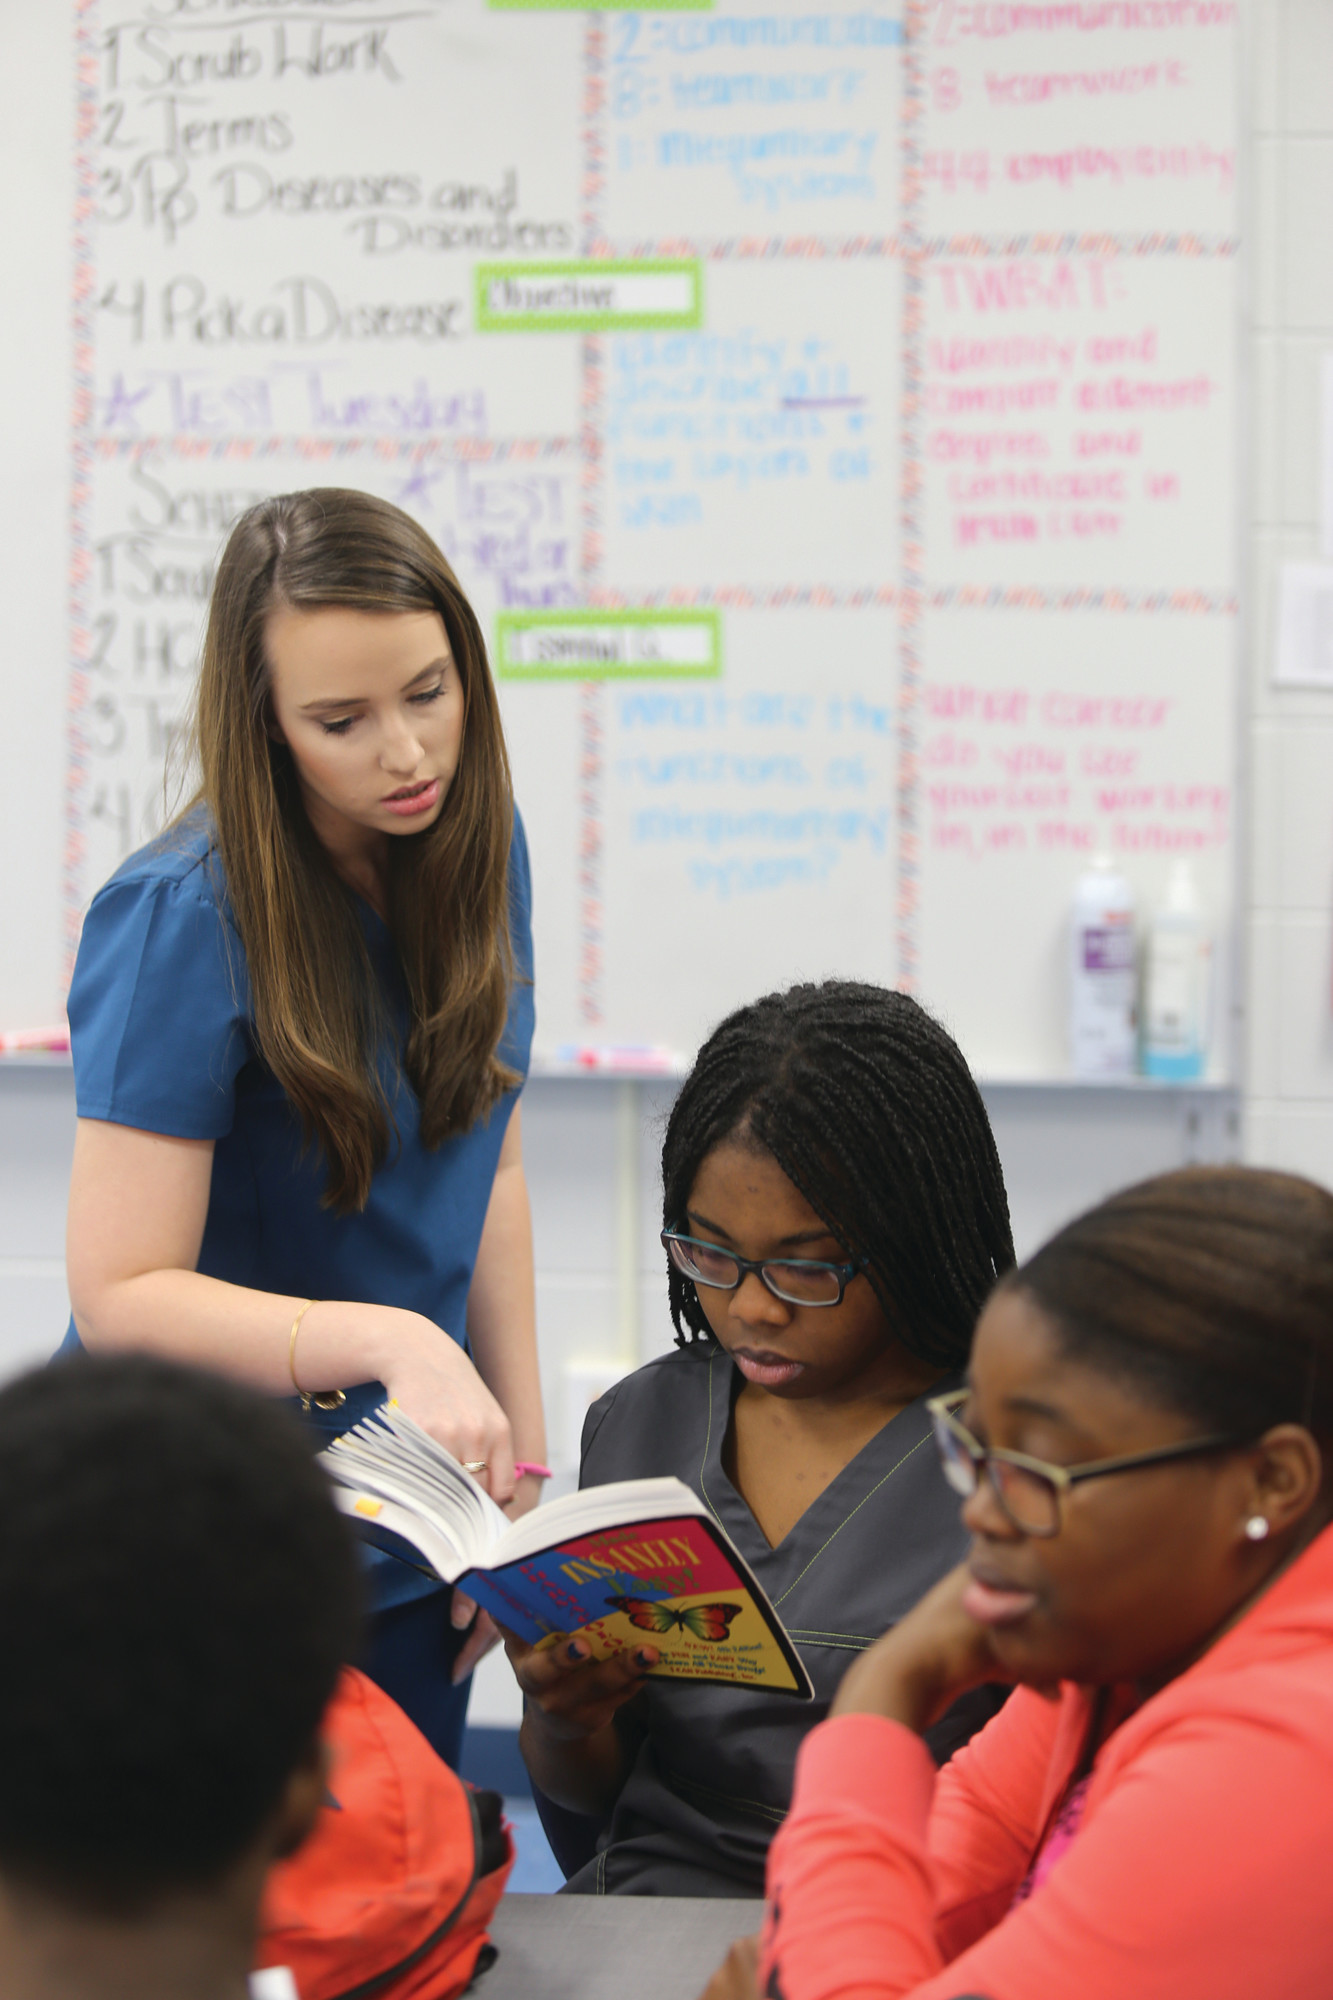 Sumter Career and Technology Center teacher Tiffany Morris goes over drug classifications from a textbook with Sumter High School senior Heather Brown on Friday as other students look on at the career and technology center.